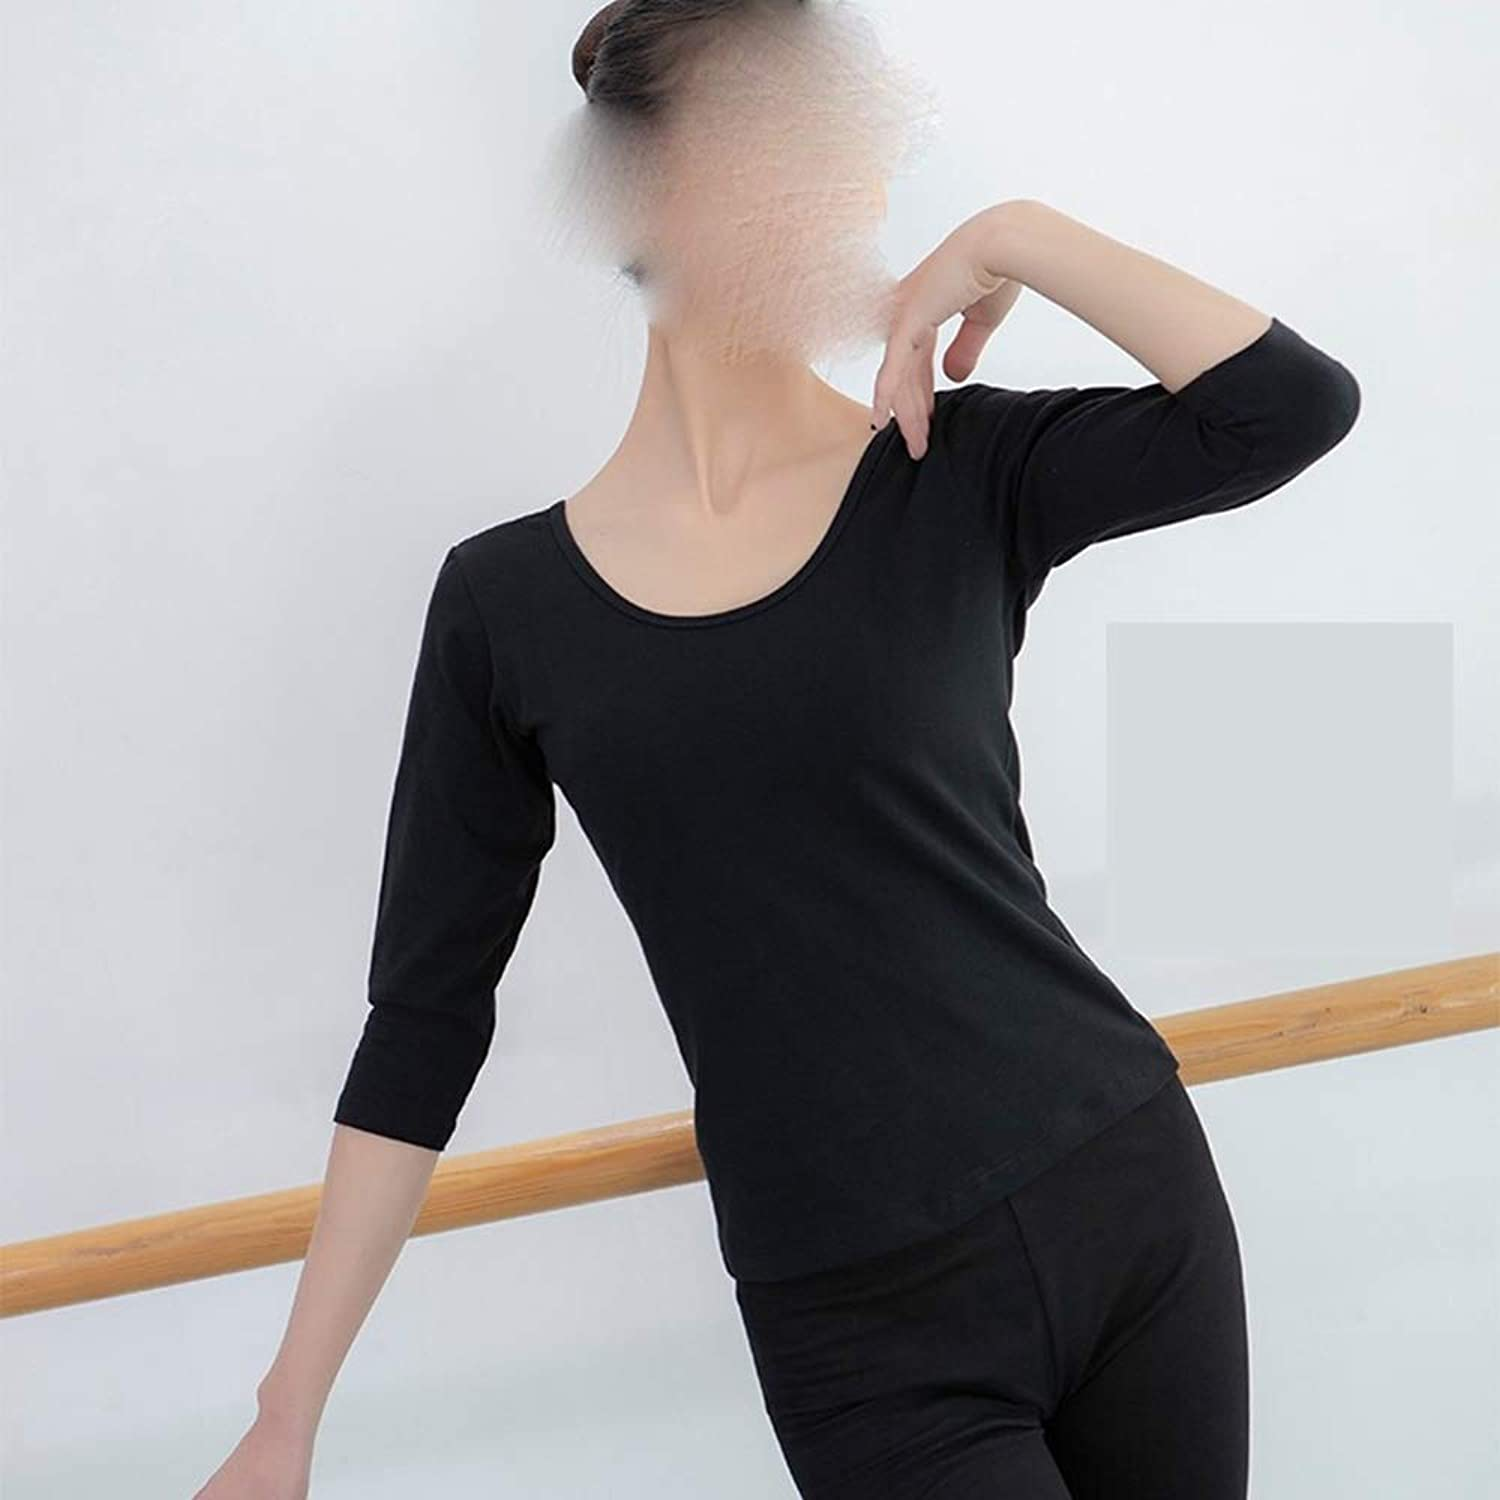 Qi Peng Dance Suit Female Adult Round Neck Slim Training Clothes Shirt Ballet Test Base Training Suit Body Suit Dancing unifom (color   Long Sleeve A, Size   S 155cm)